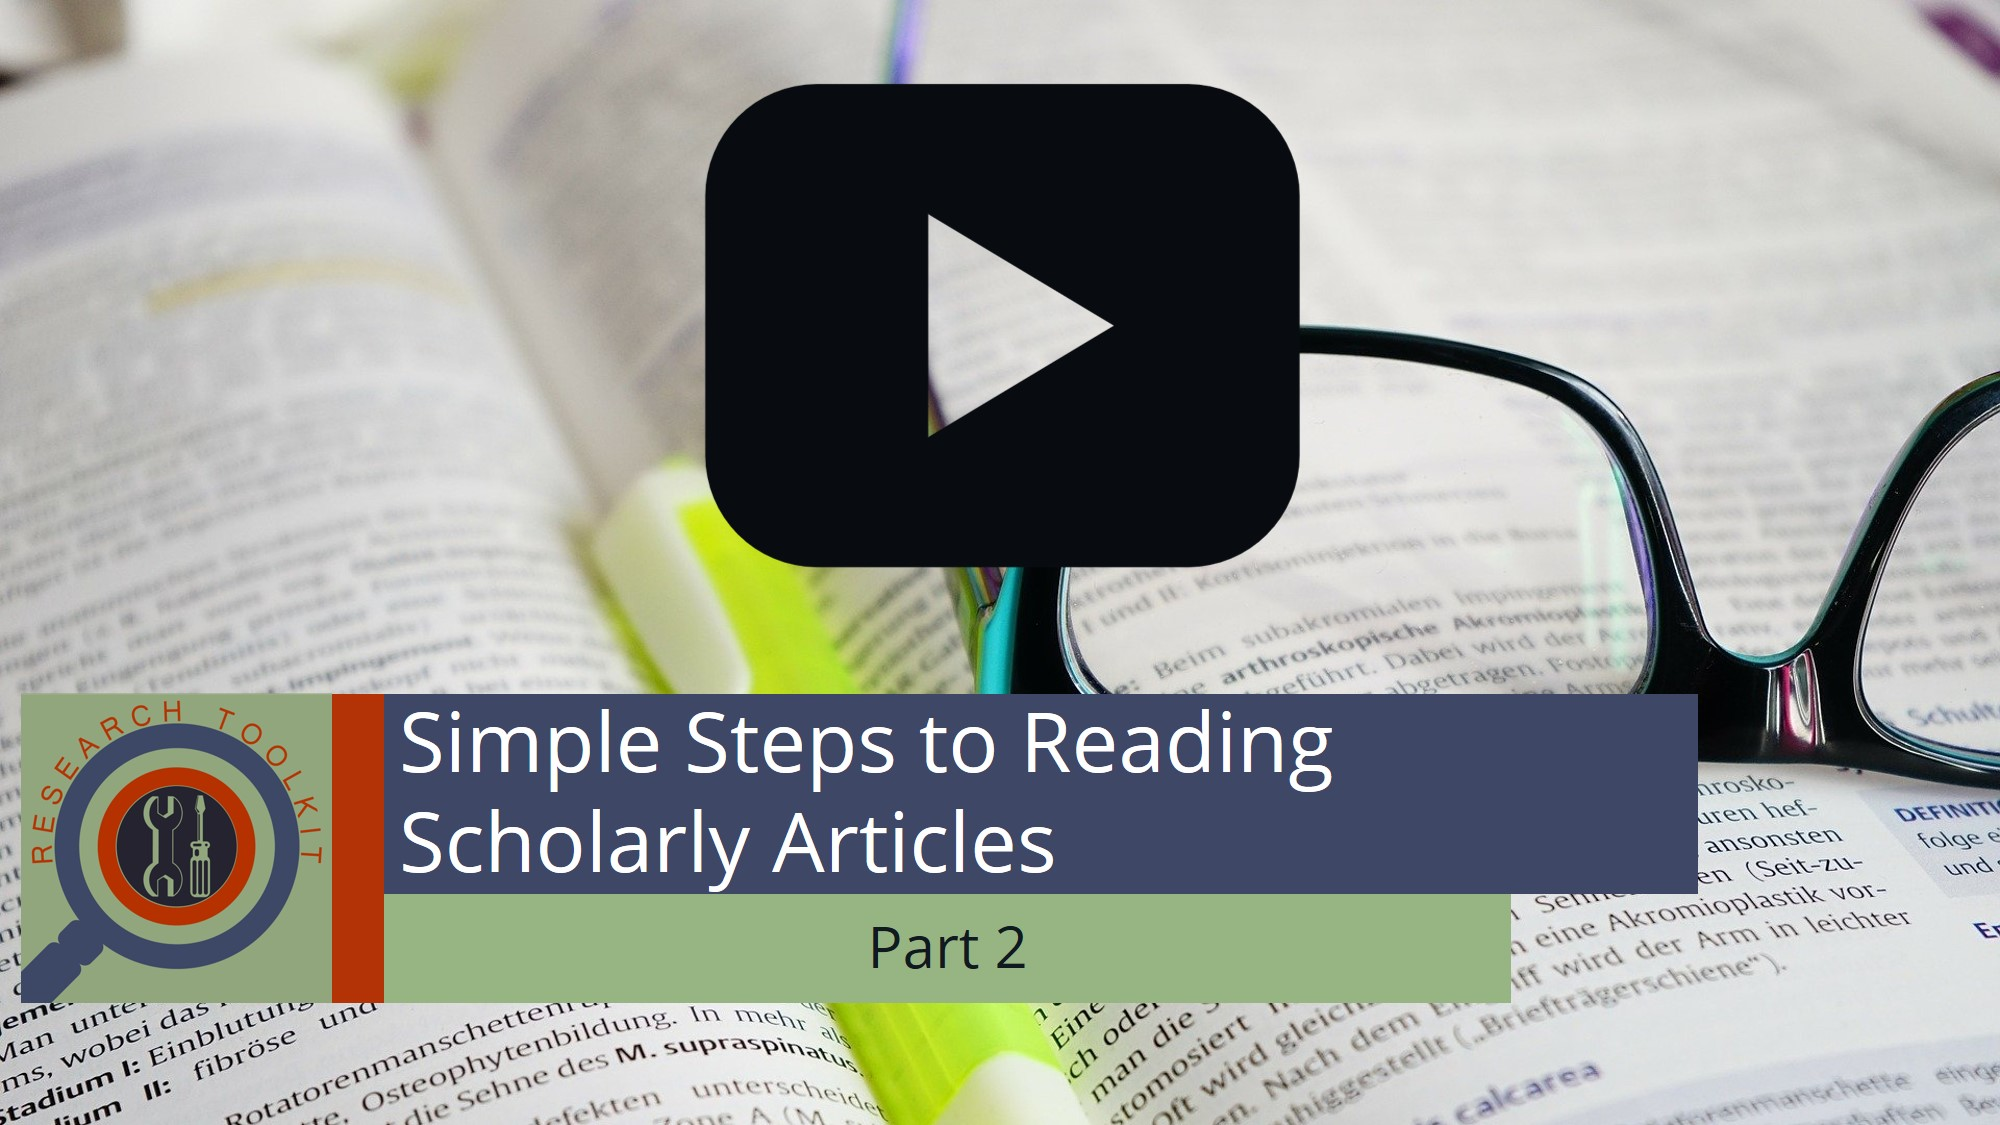 Simple Steps to Reading Scholarly Articles Part 2